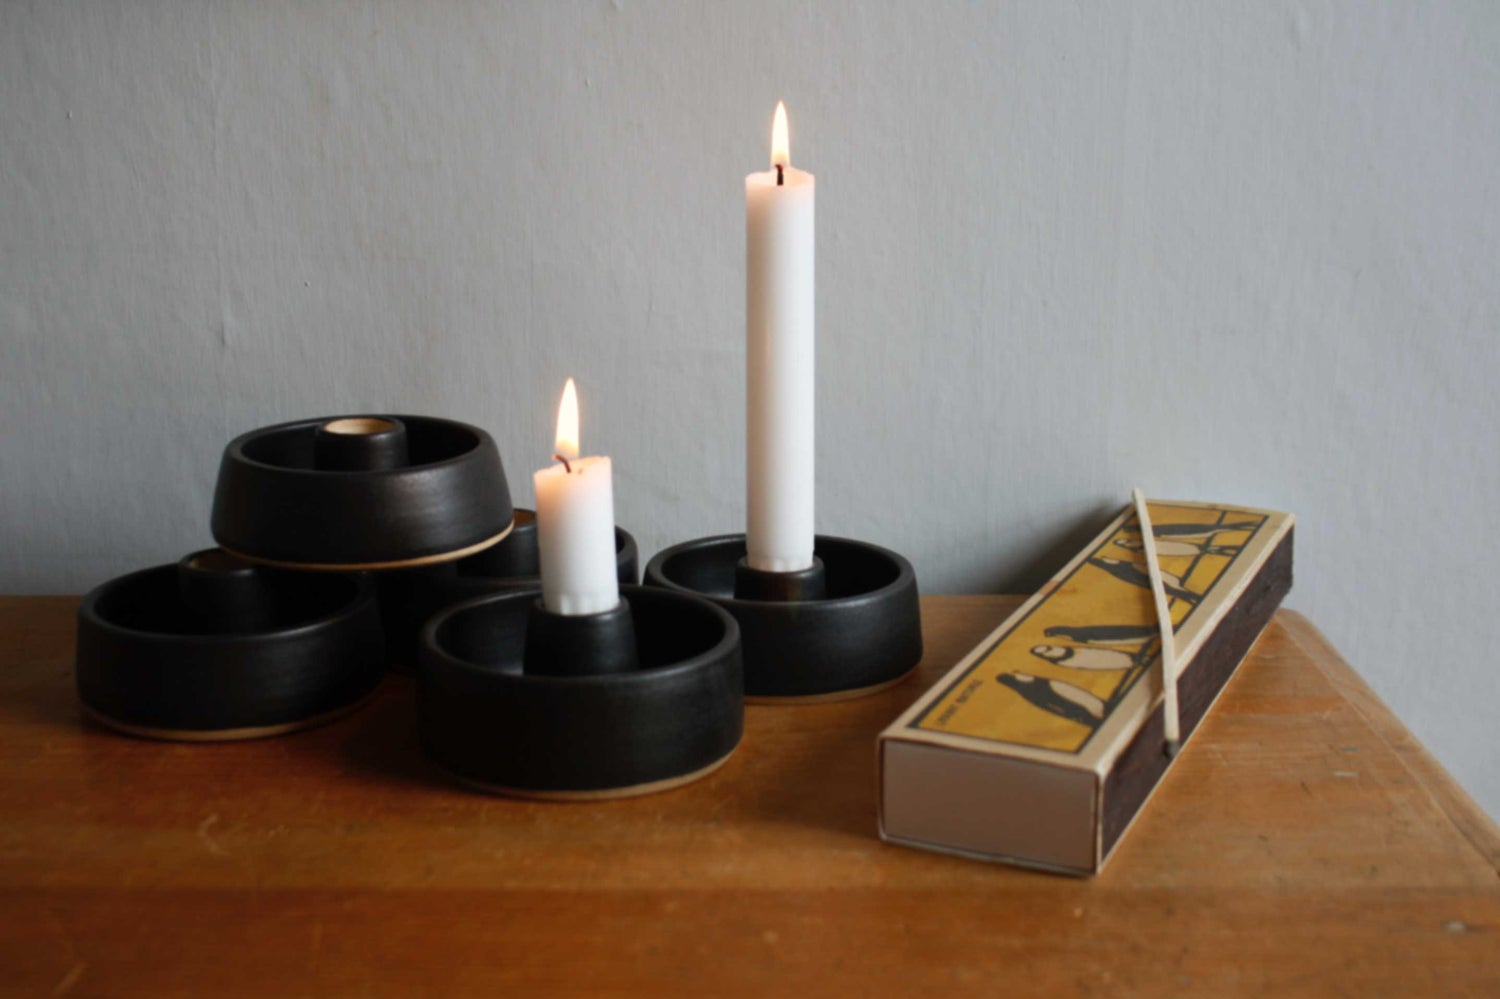 Image of COAL candlestick